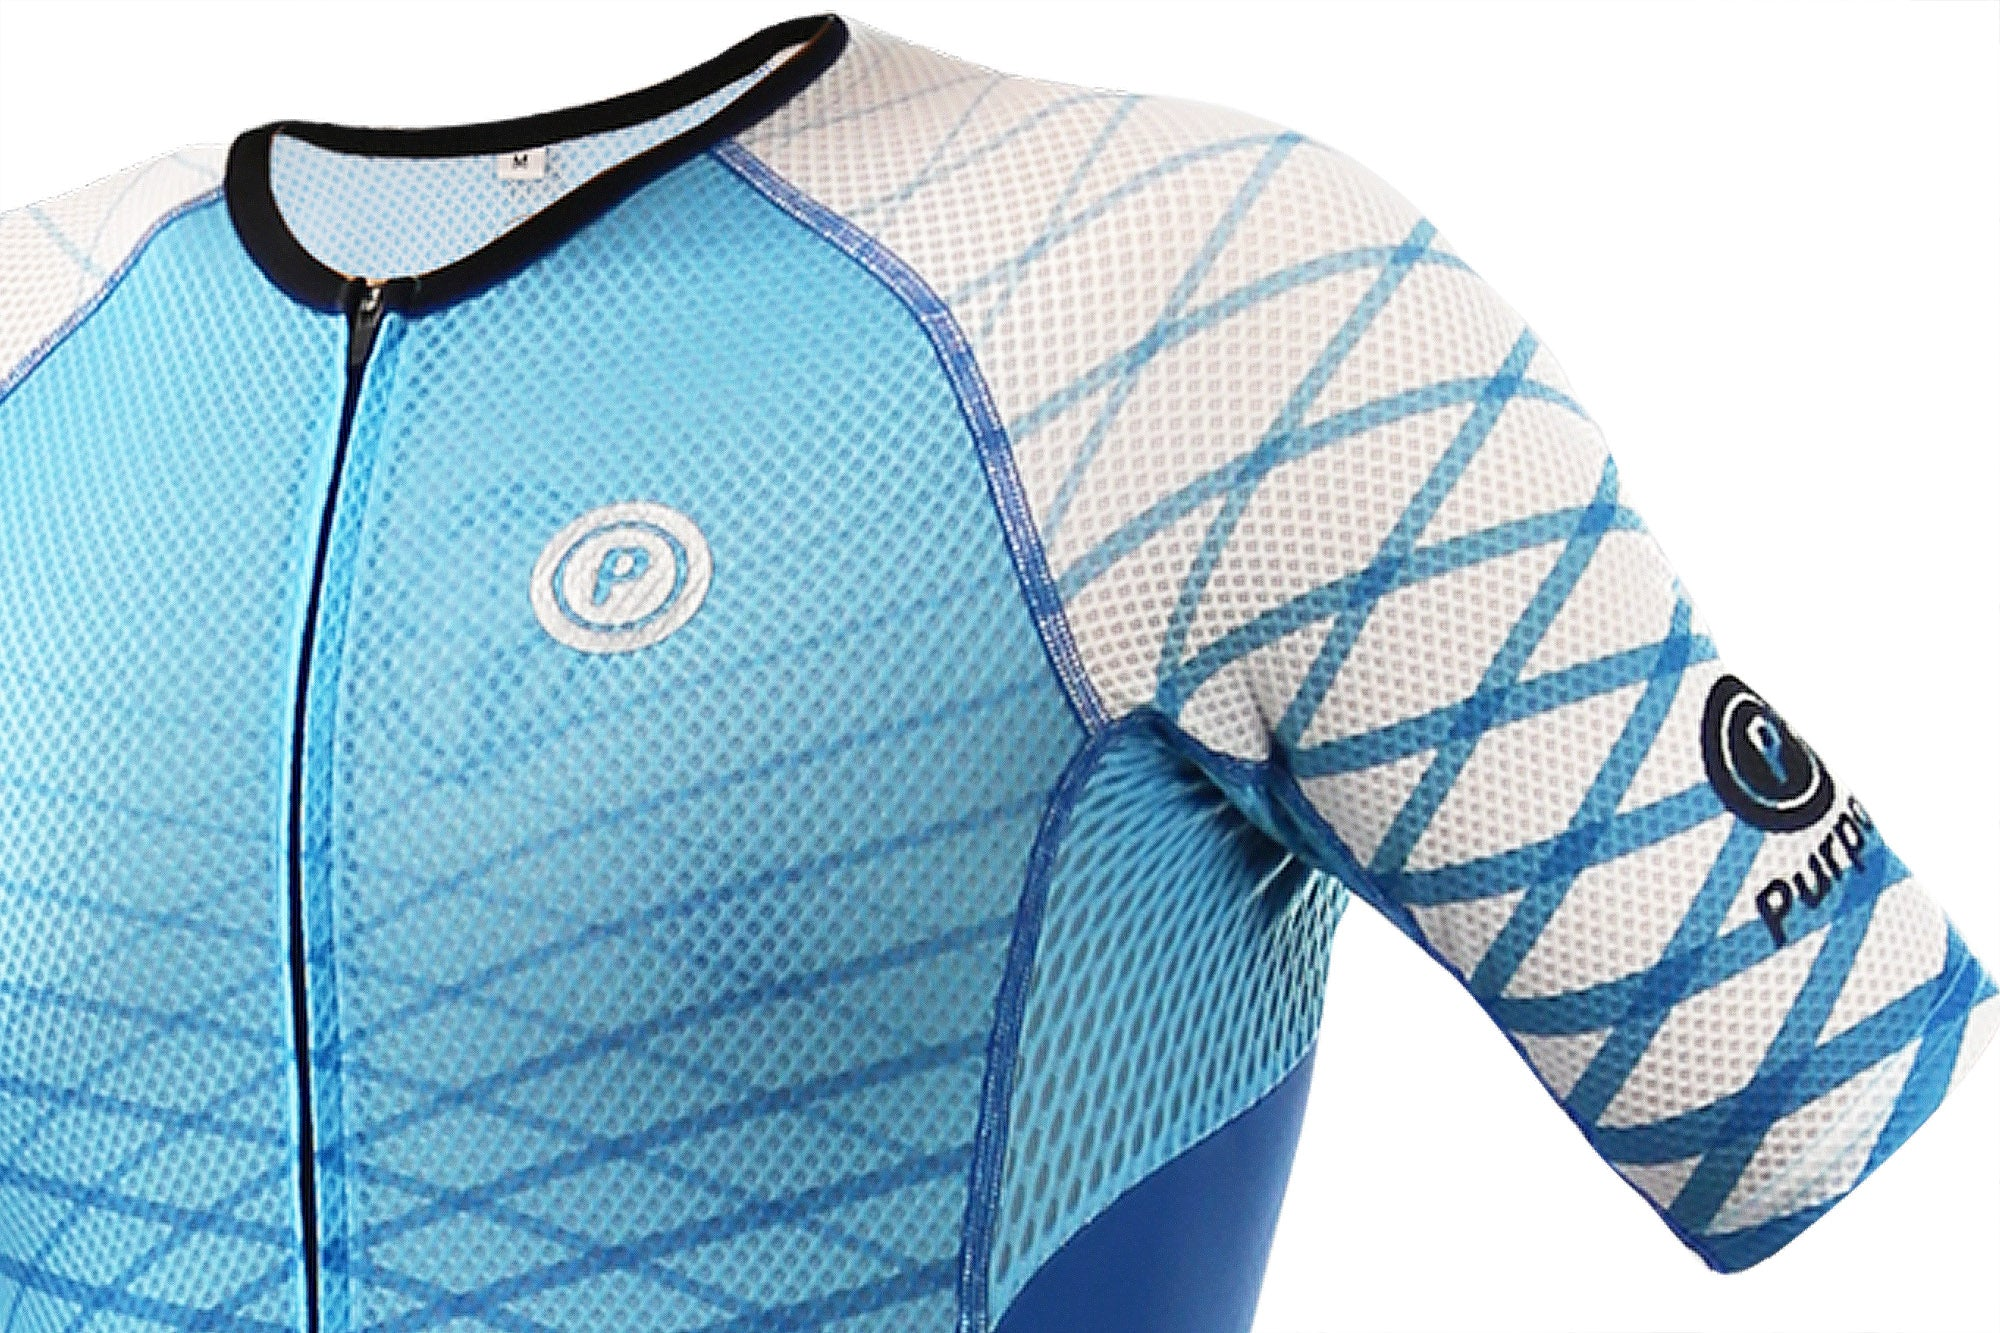 Purpose Flow Pro Performance Mesh Tri Suit (Aero Blue, Sleeve)